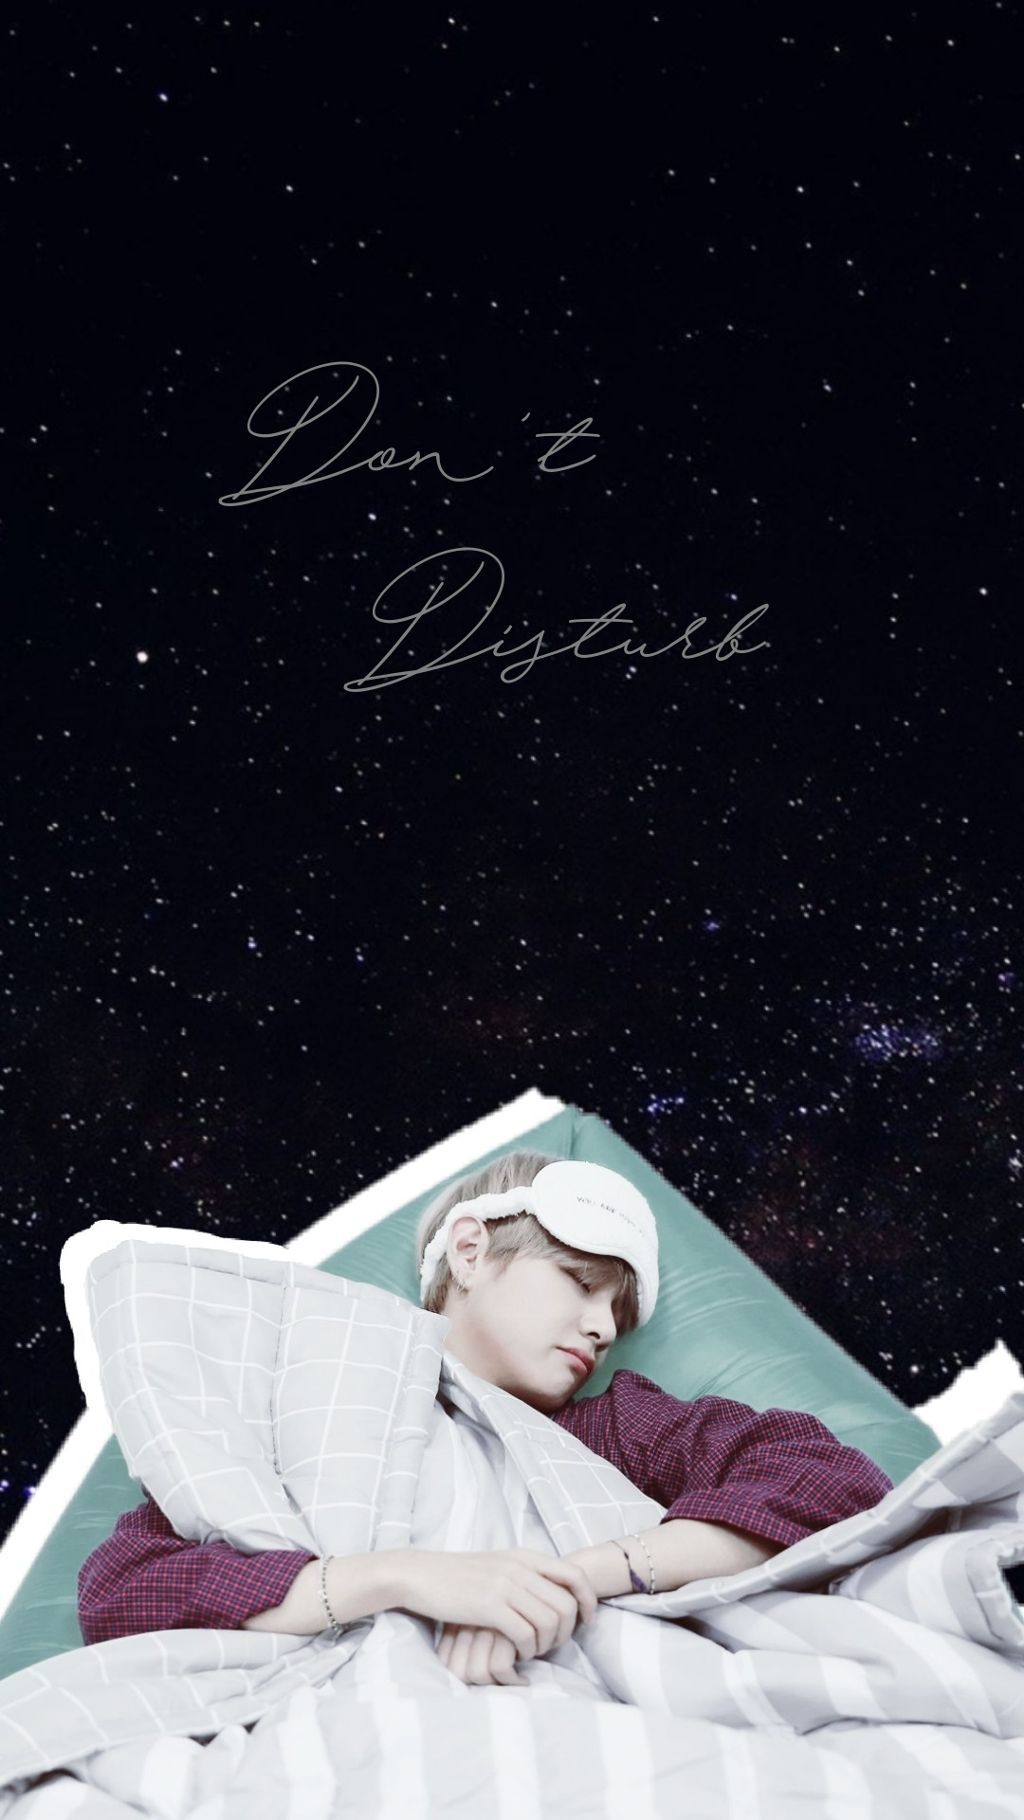 Bts Tae Hyung Wallpapers Top Free Bts Tae Hyung Backgrounds